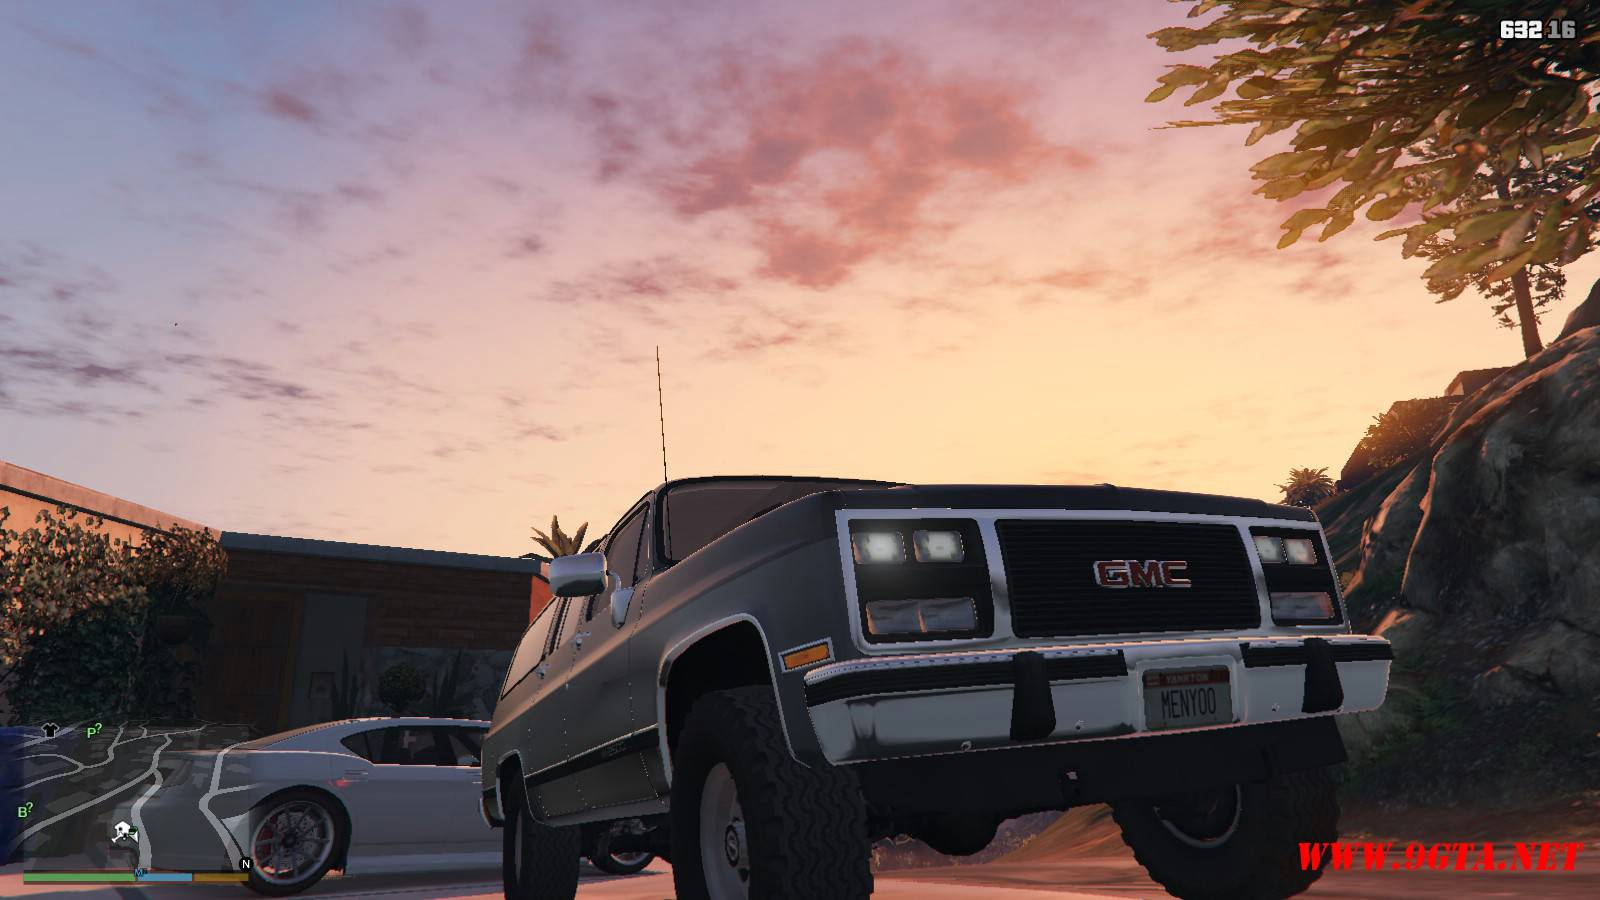 1989 GMC Suburban Mod For GTA 5 (9)